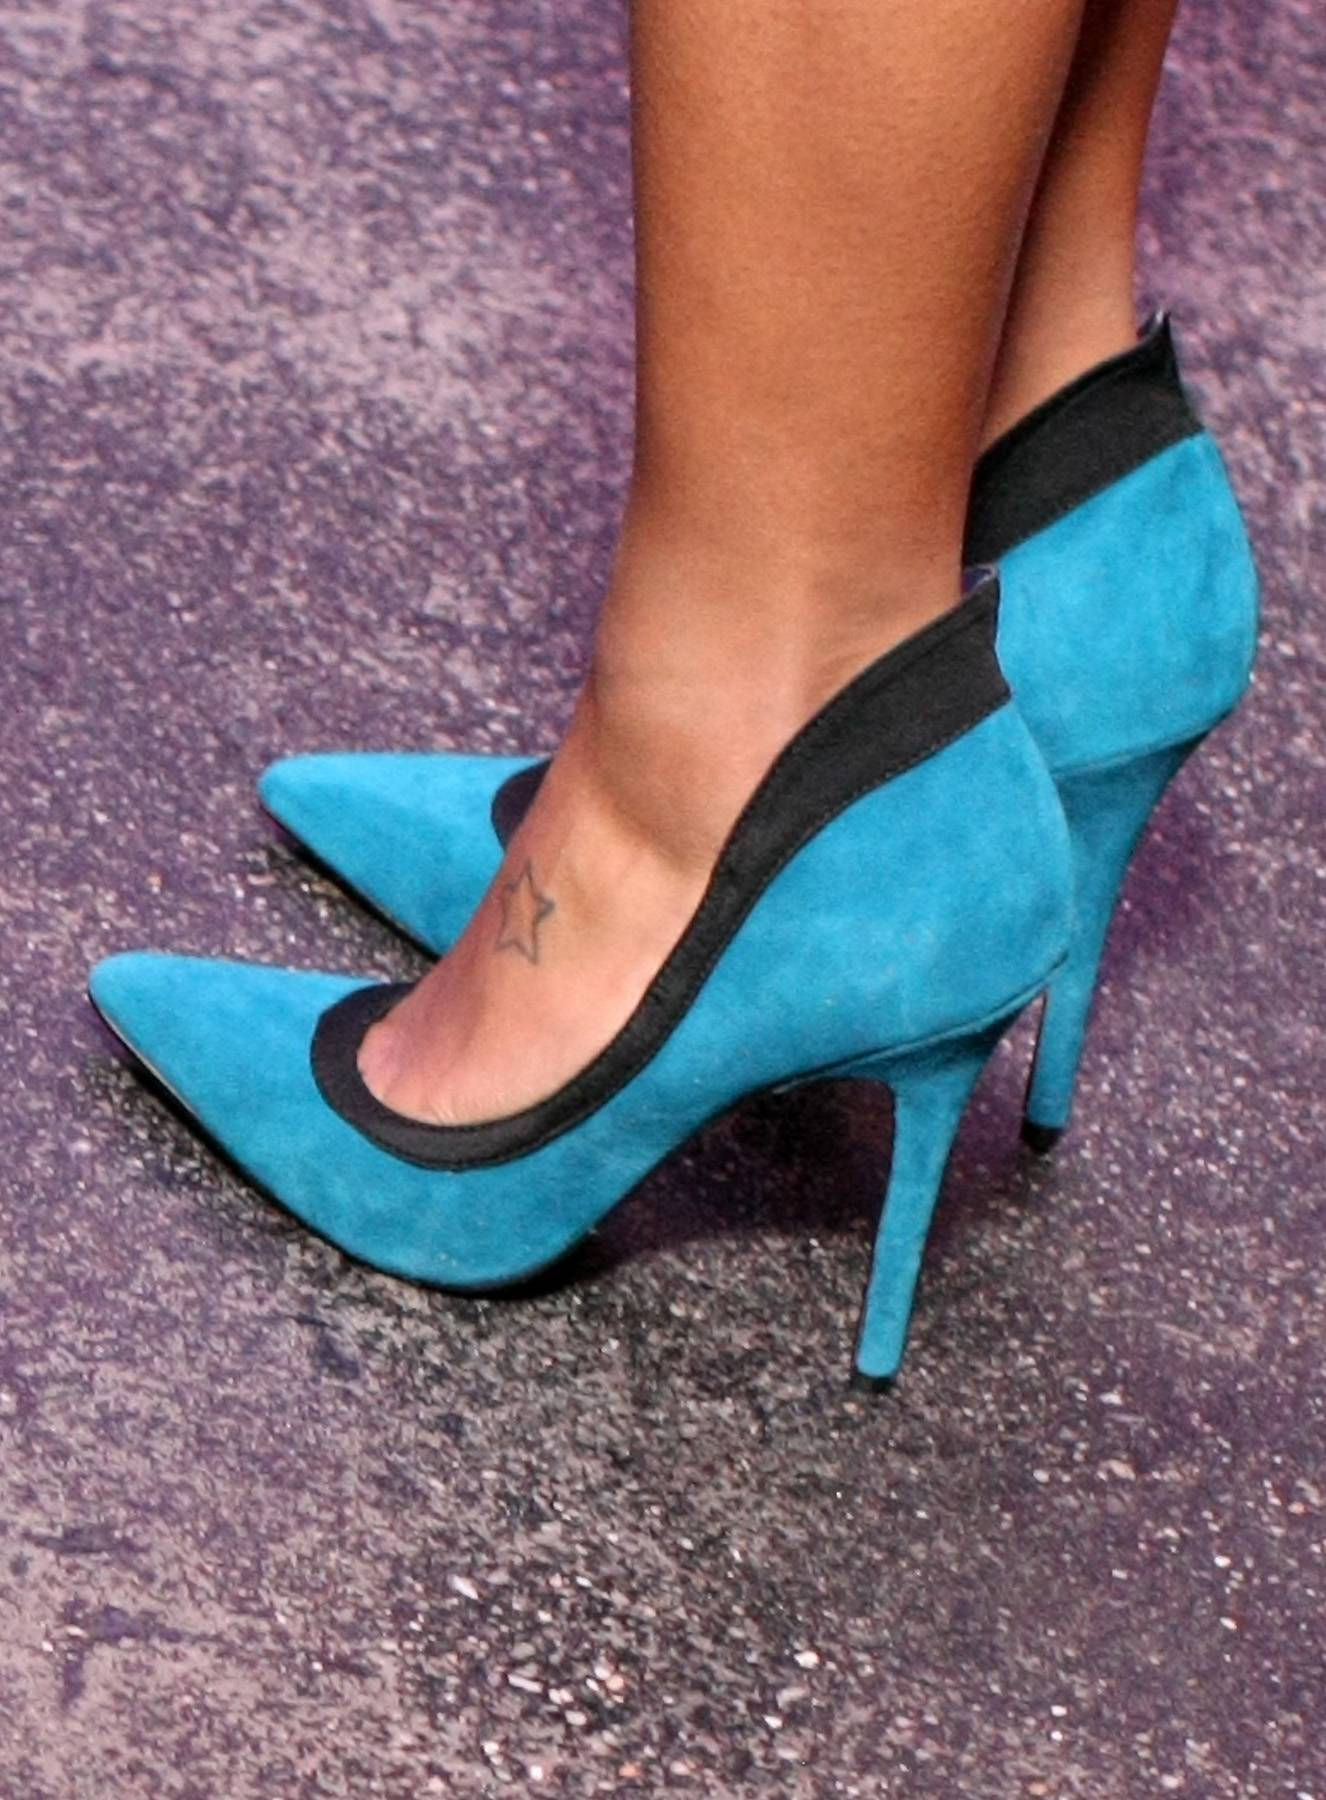 A Touch of Blue - Angela Simmons shows off a splash of color and looks liek a bawse in these blue shoes backstage on 106. (Photo: Bennett Raglin/BET/Getty Images for BET)